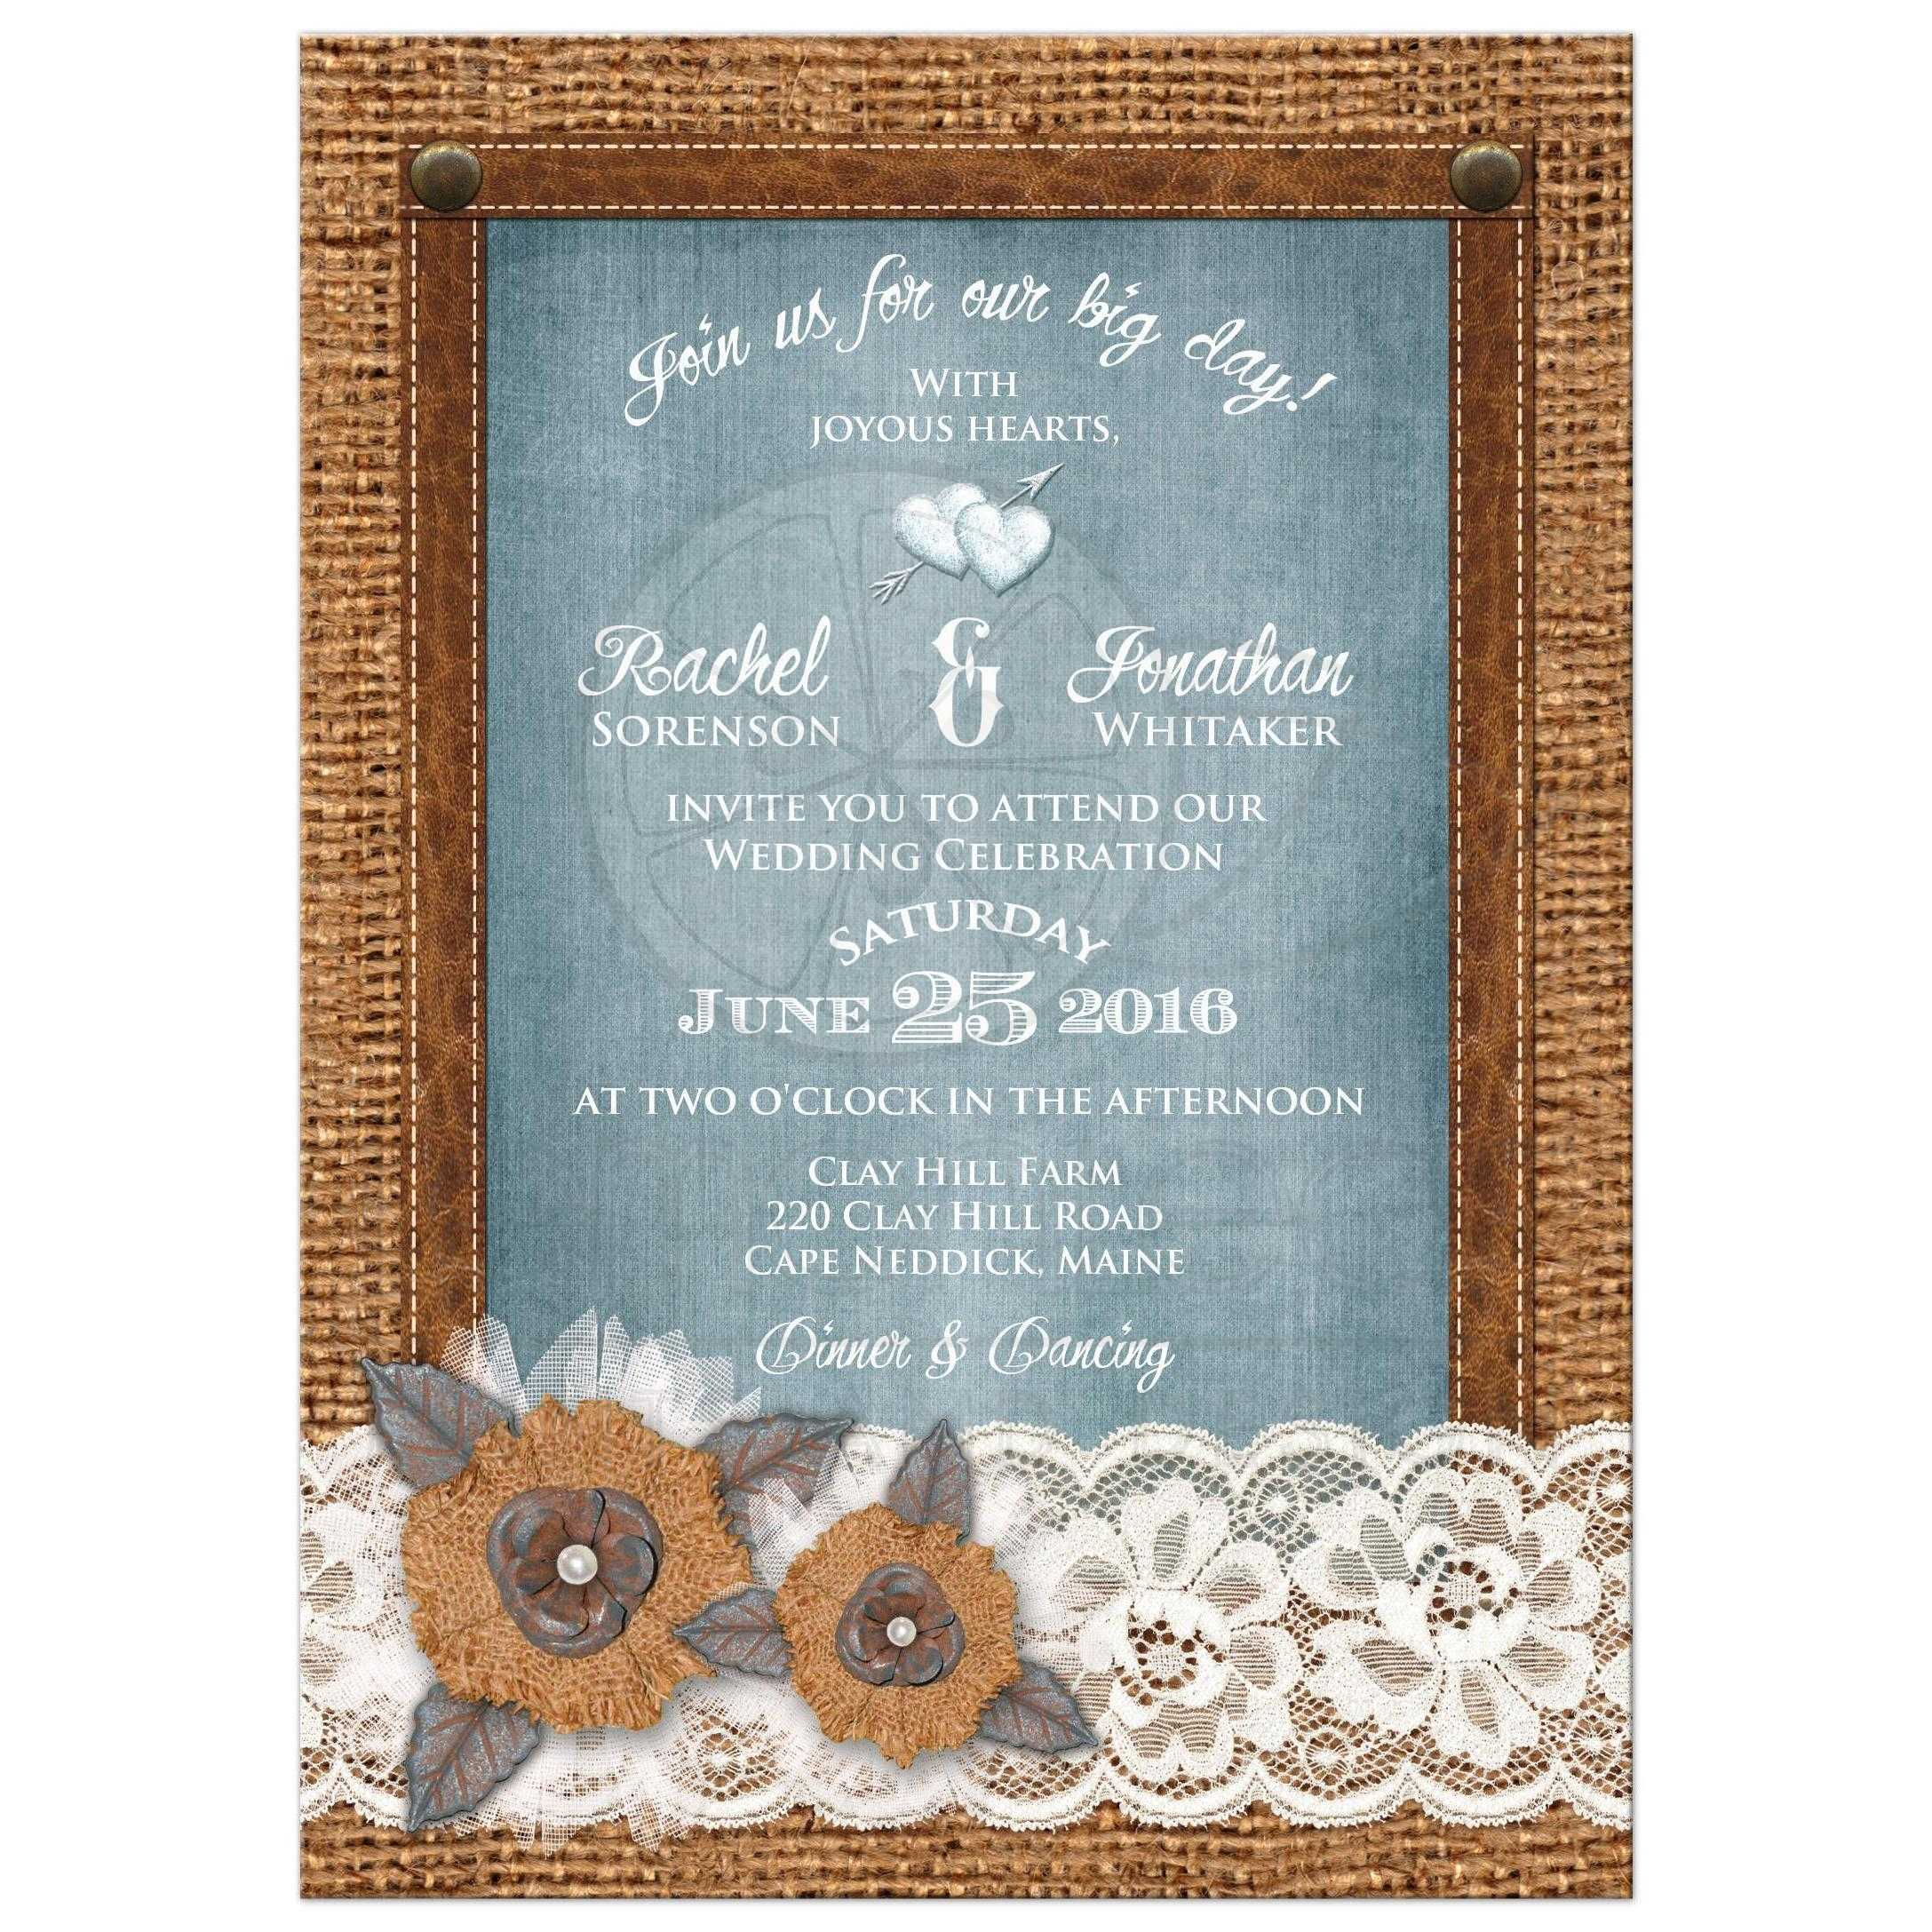 rustic country wedding invitations burlap wedding invitations great rustic country wedding invitation with burlap lace leather denim